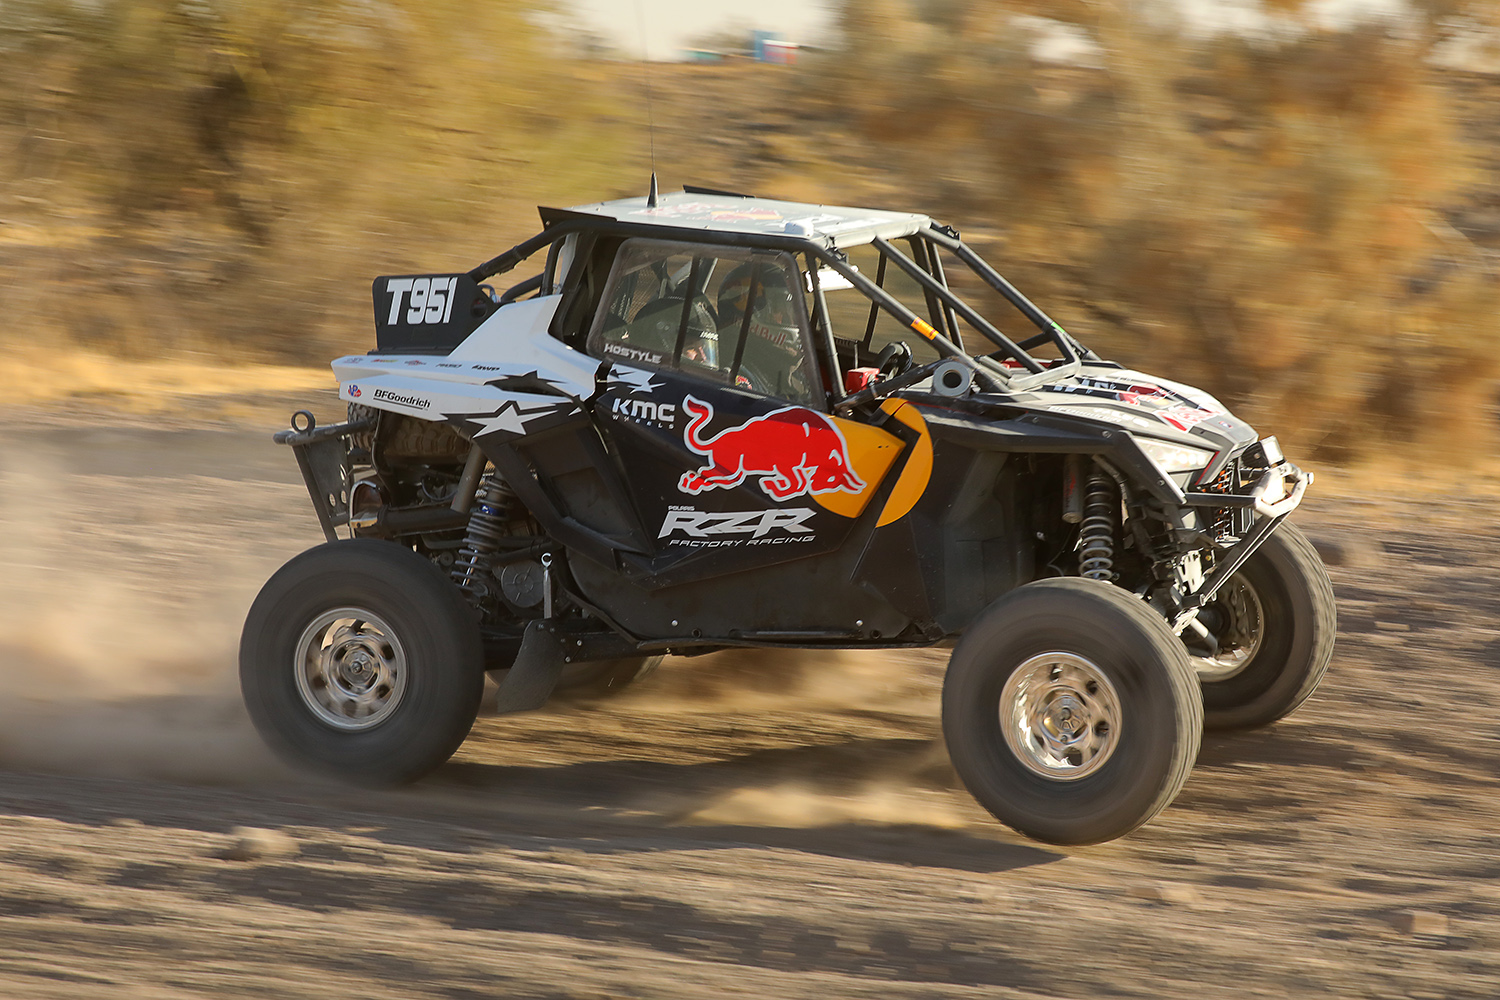 POLARIS RZR FACTORY RACING PREVAILS AT THE PARKER 250